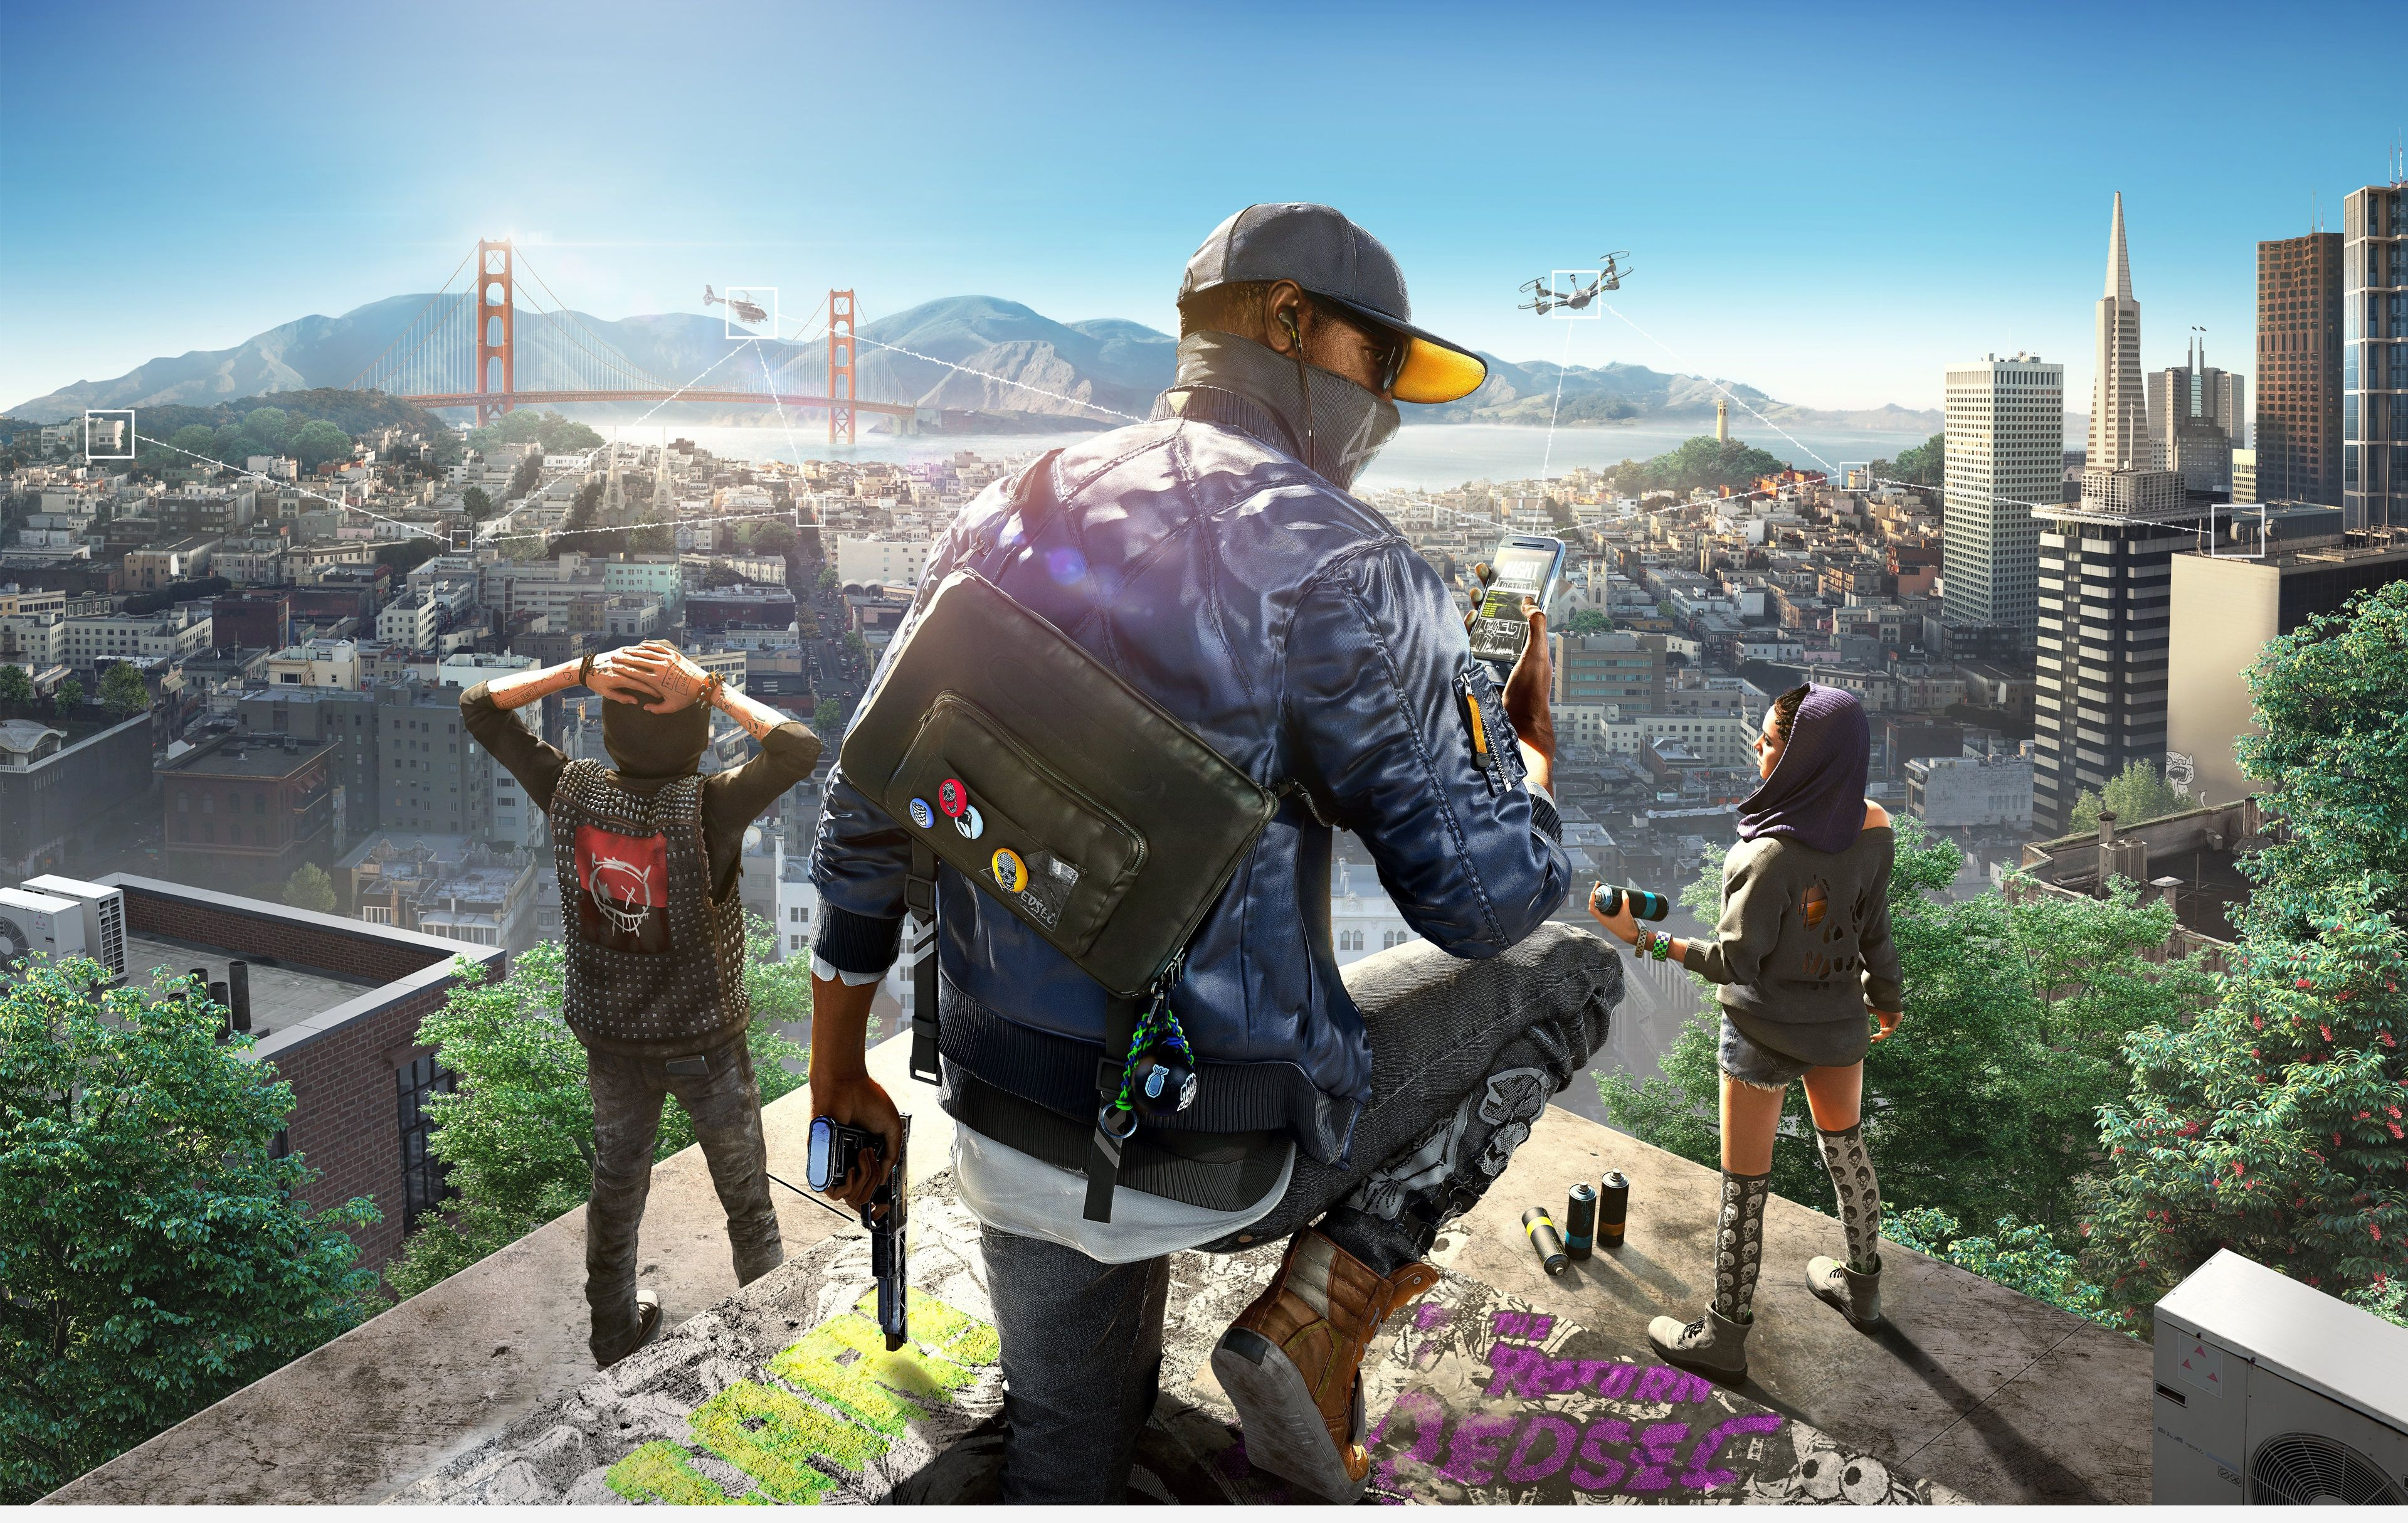 Watch Dogs 2 Wallpaper Http Desktopwallpaper Info Watch Dogs 2 Wallpaper 4278 Wallpaper Watch Wallpaper Watch Watch Dogs Watchdogs 2 Watch Dogs 1